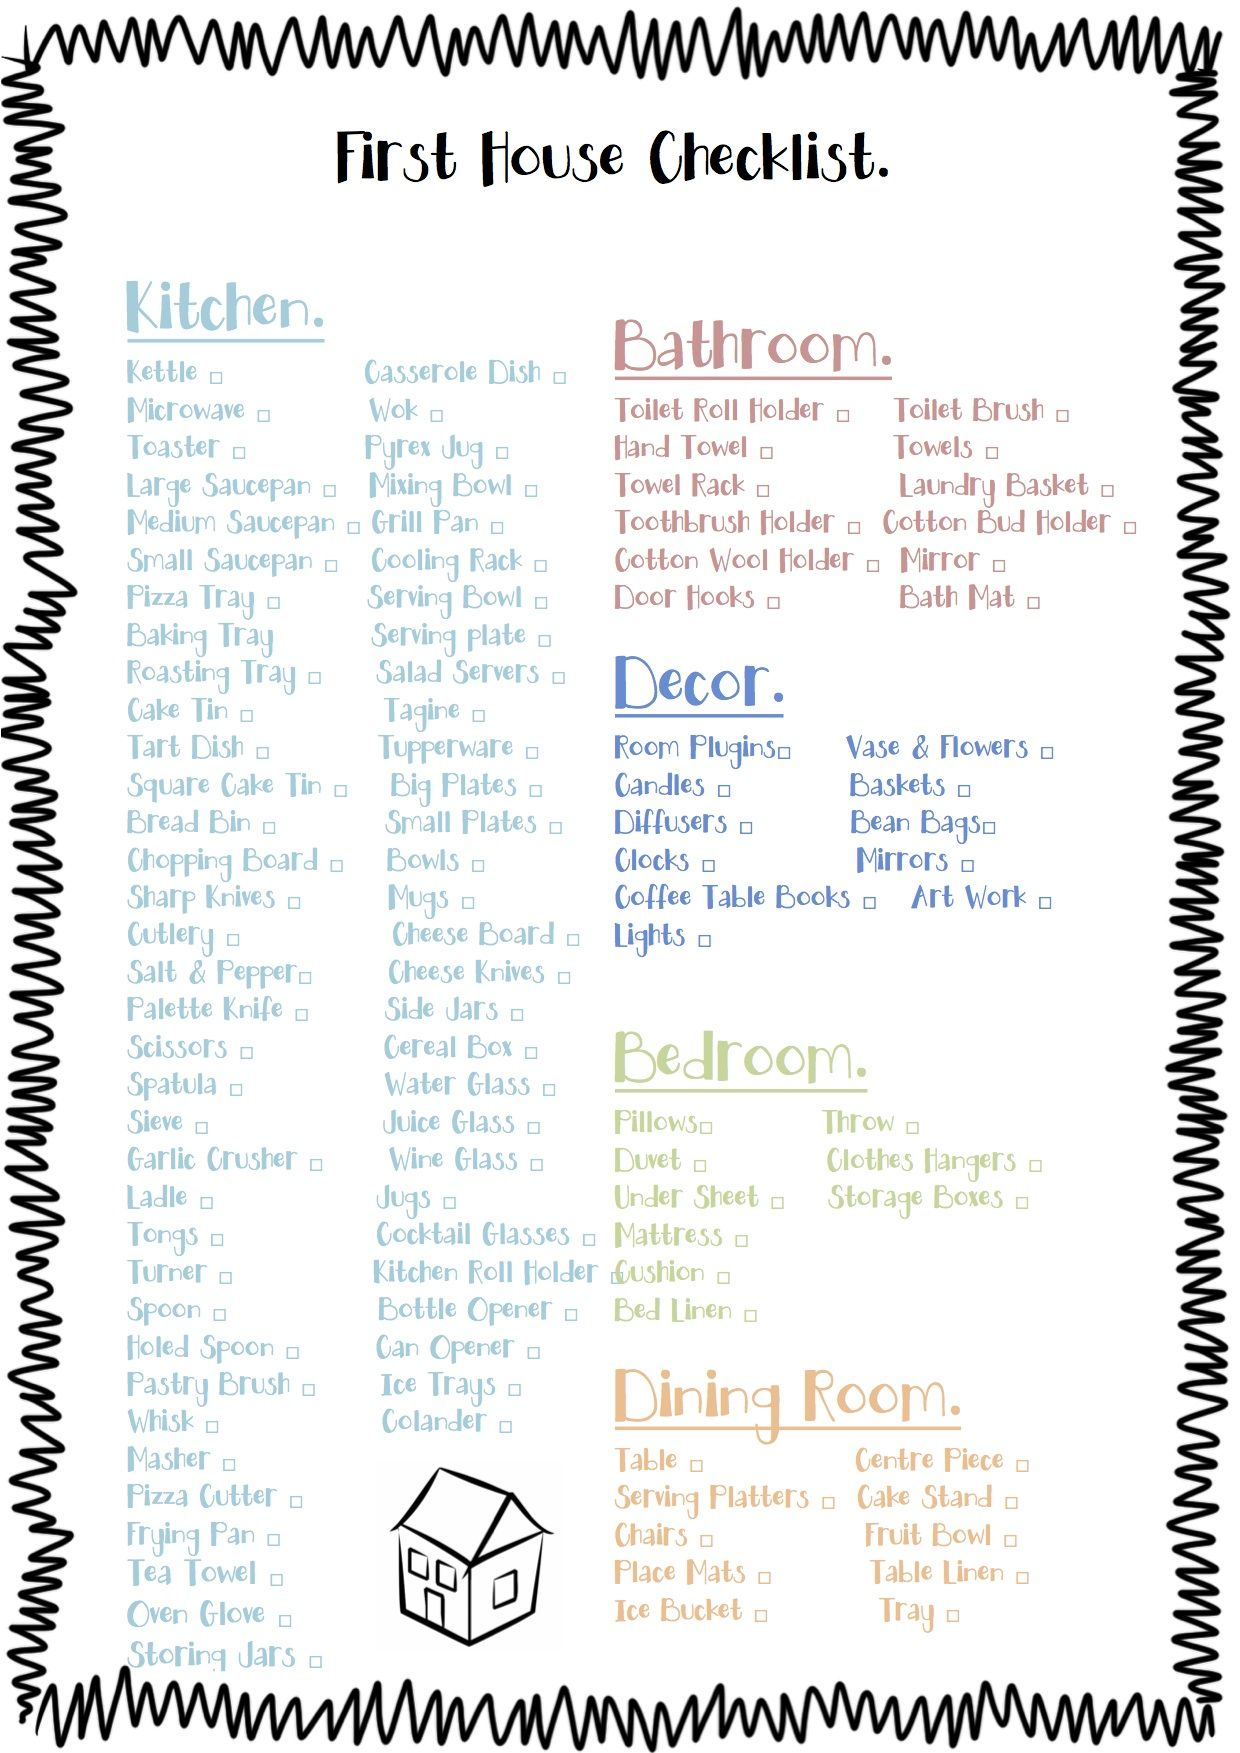 Free Printable Check List For The Essentials To A First House Minus Obvious D